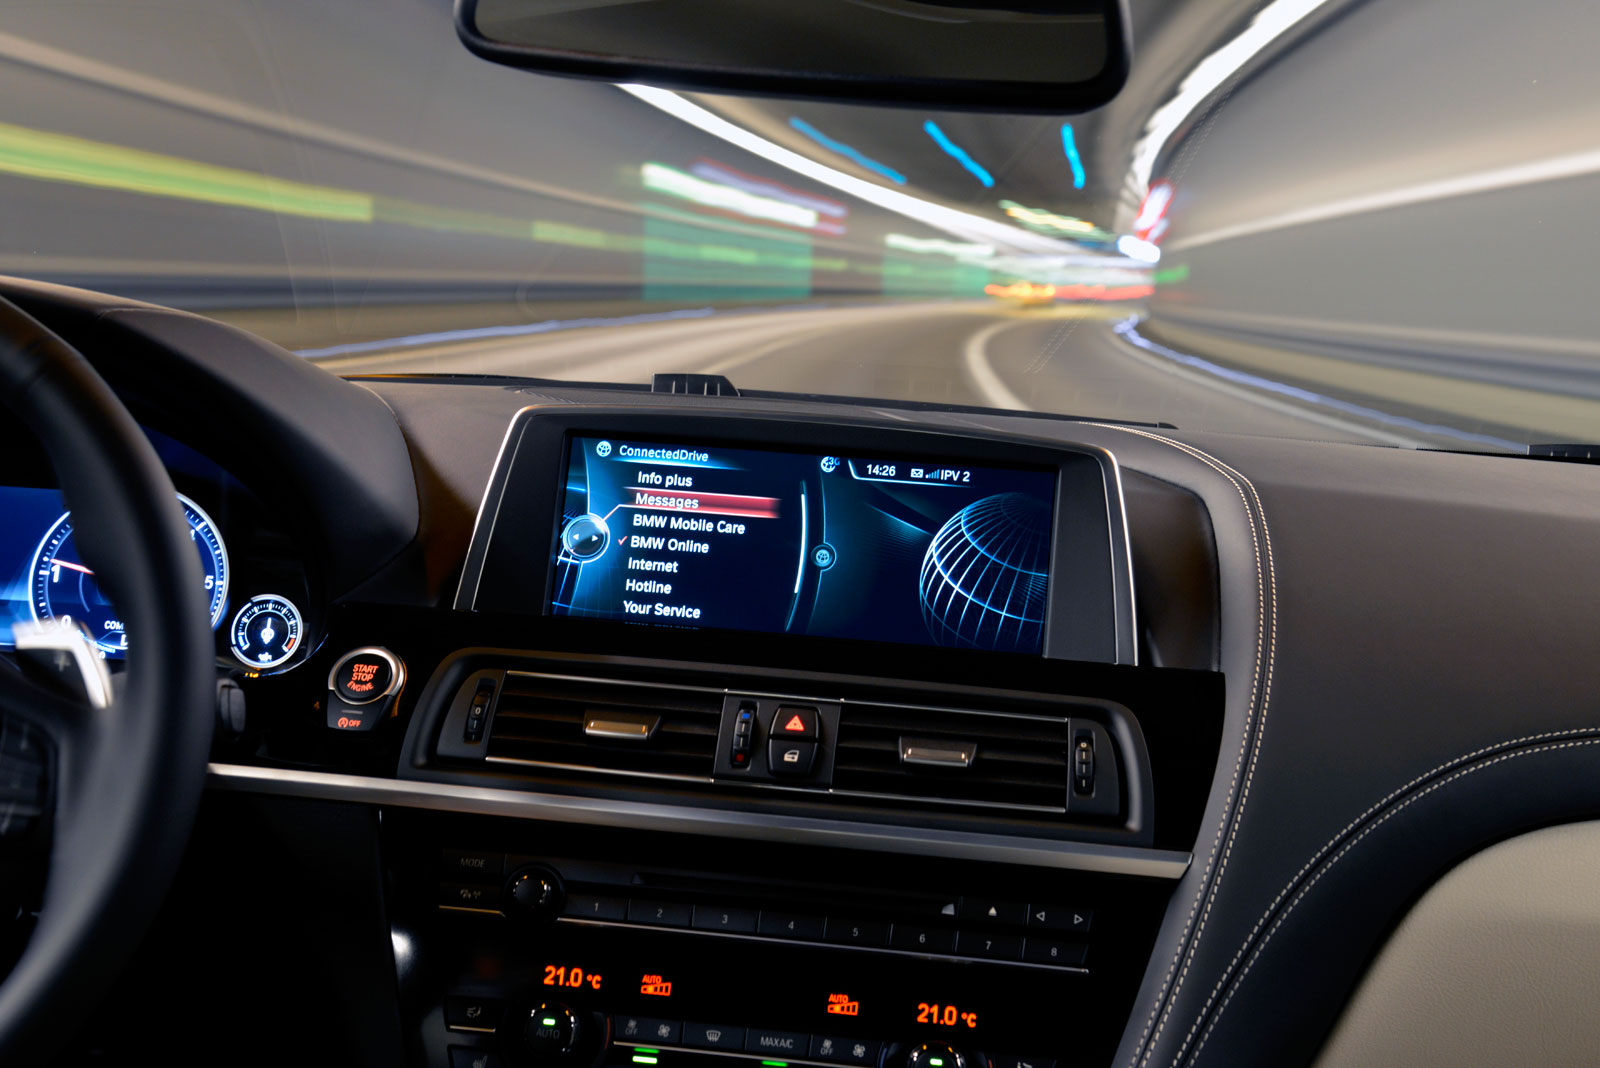 Corporate Car Online: Future BMWs To Come With SIM Cards, Access To New